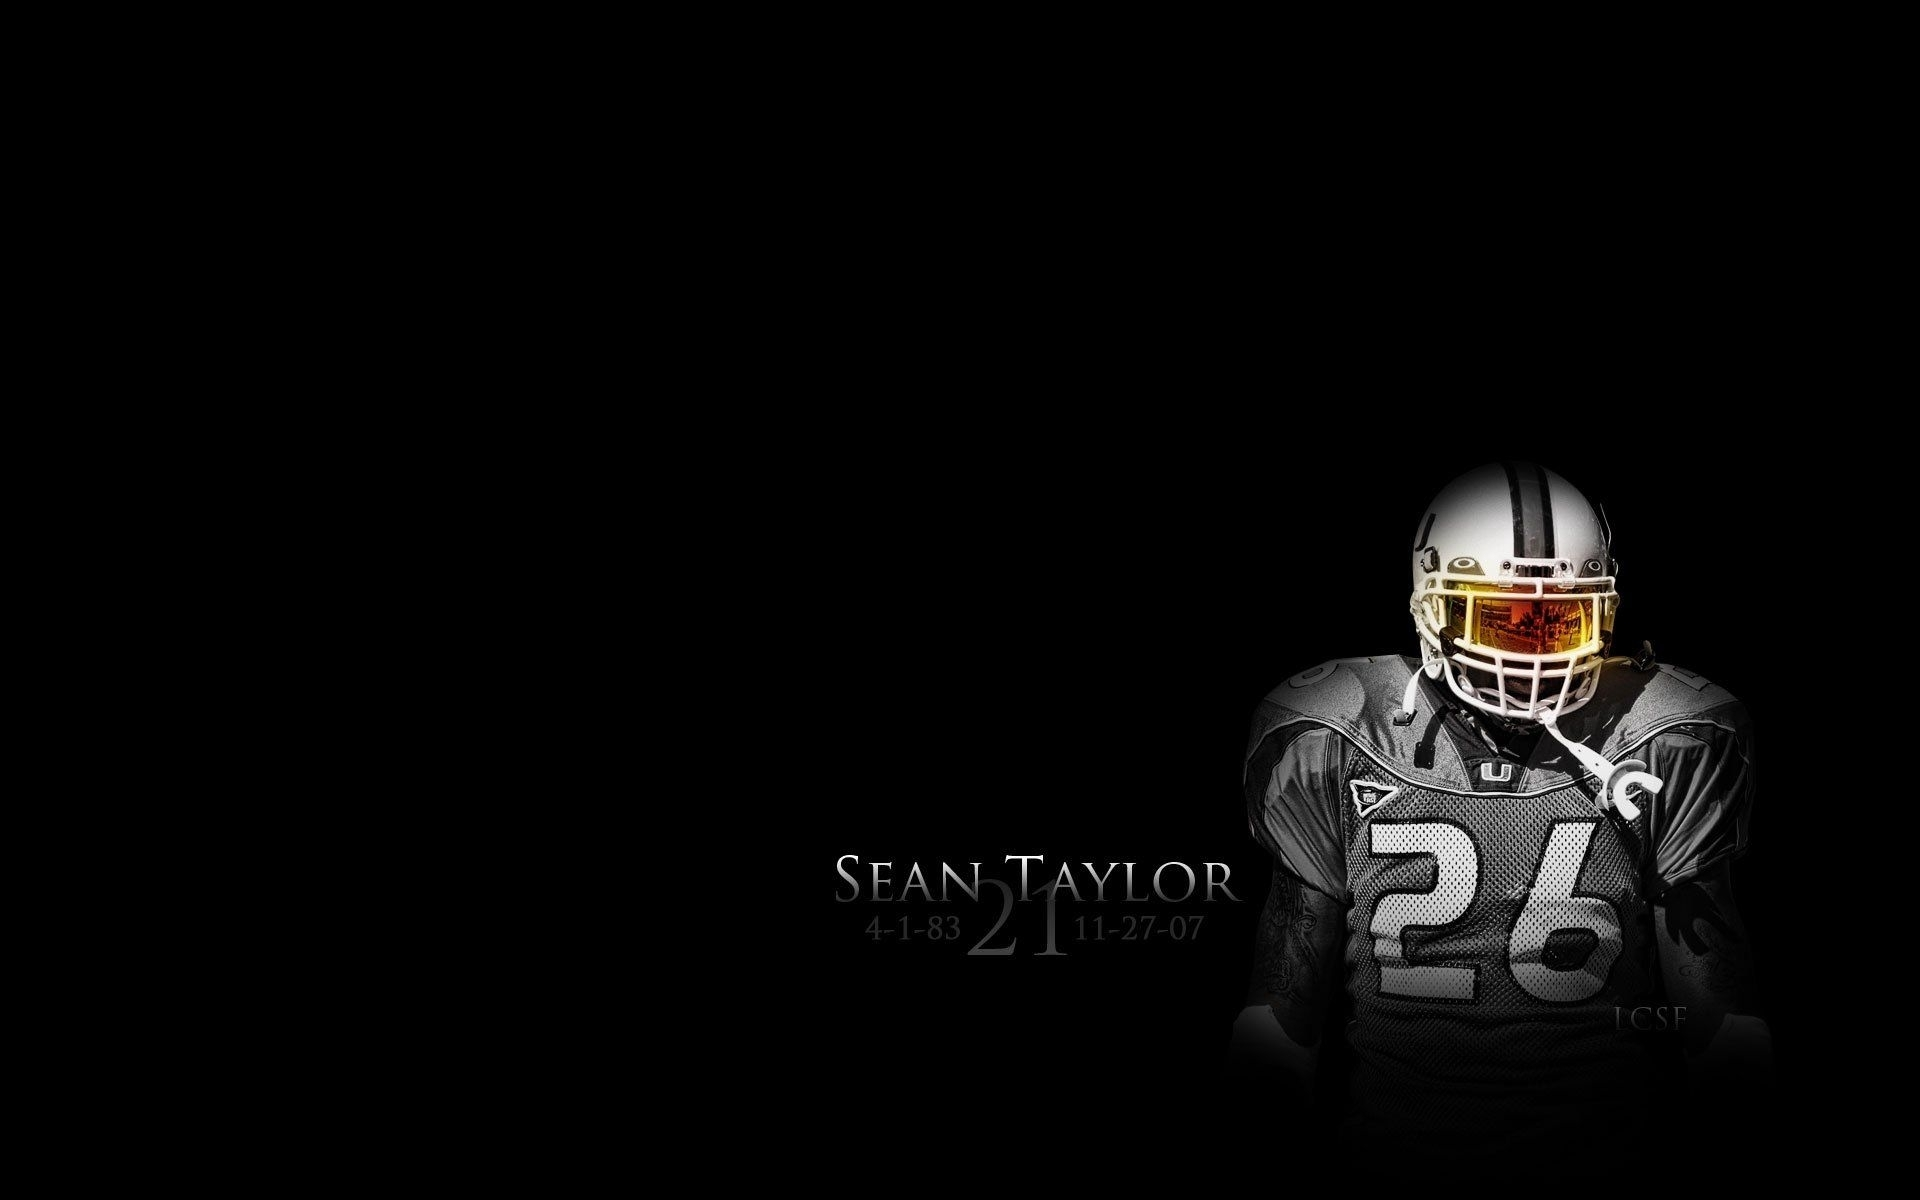 sean taylor wallpapers - wallpaper cave